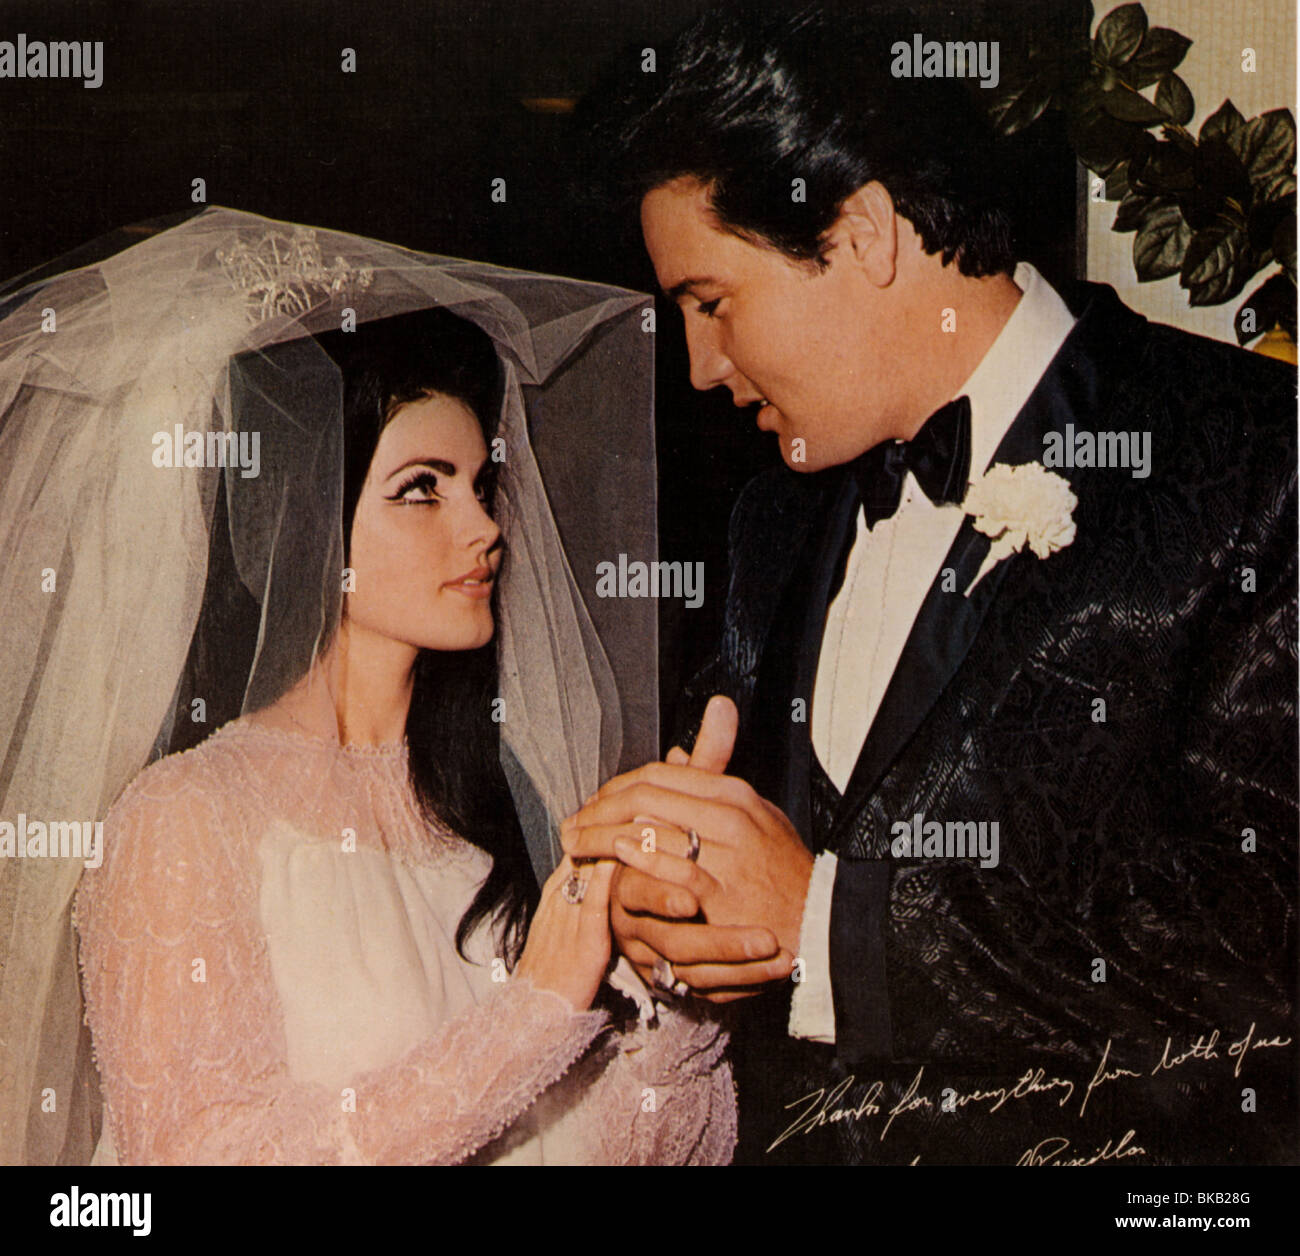 Elvis Wedding: ELVIS PRESLEY MARRIAGE TO PRISCILLA PRESLEY (1967) ELV